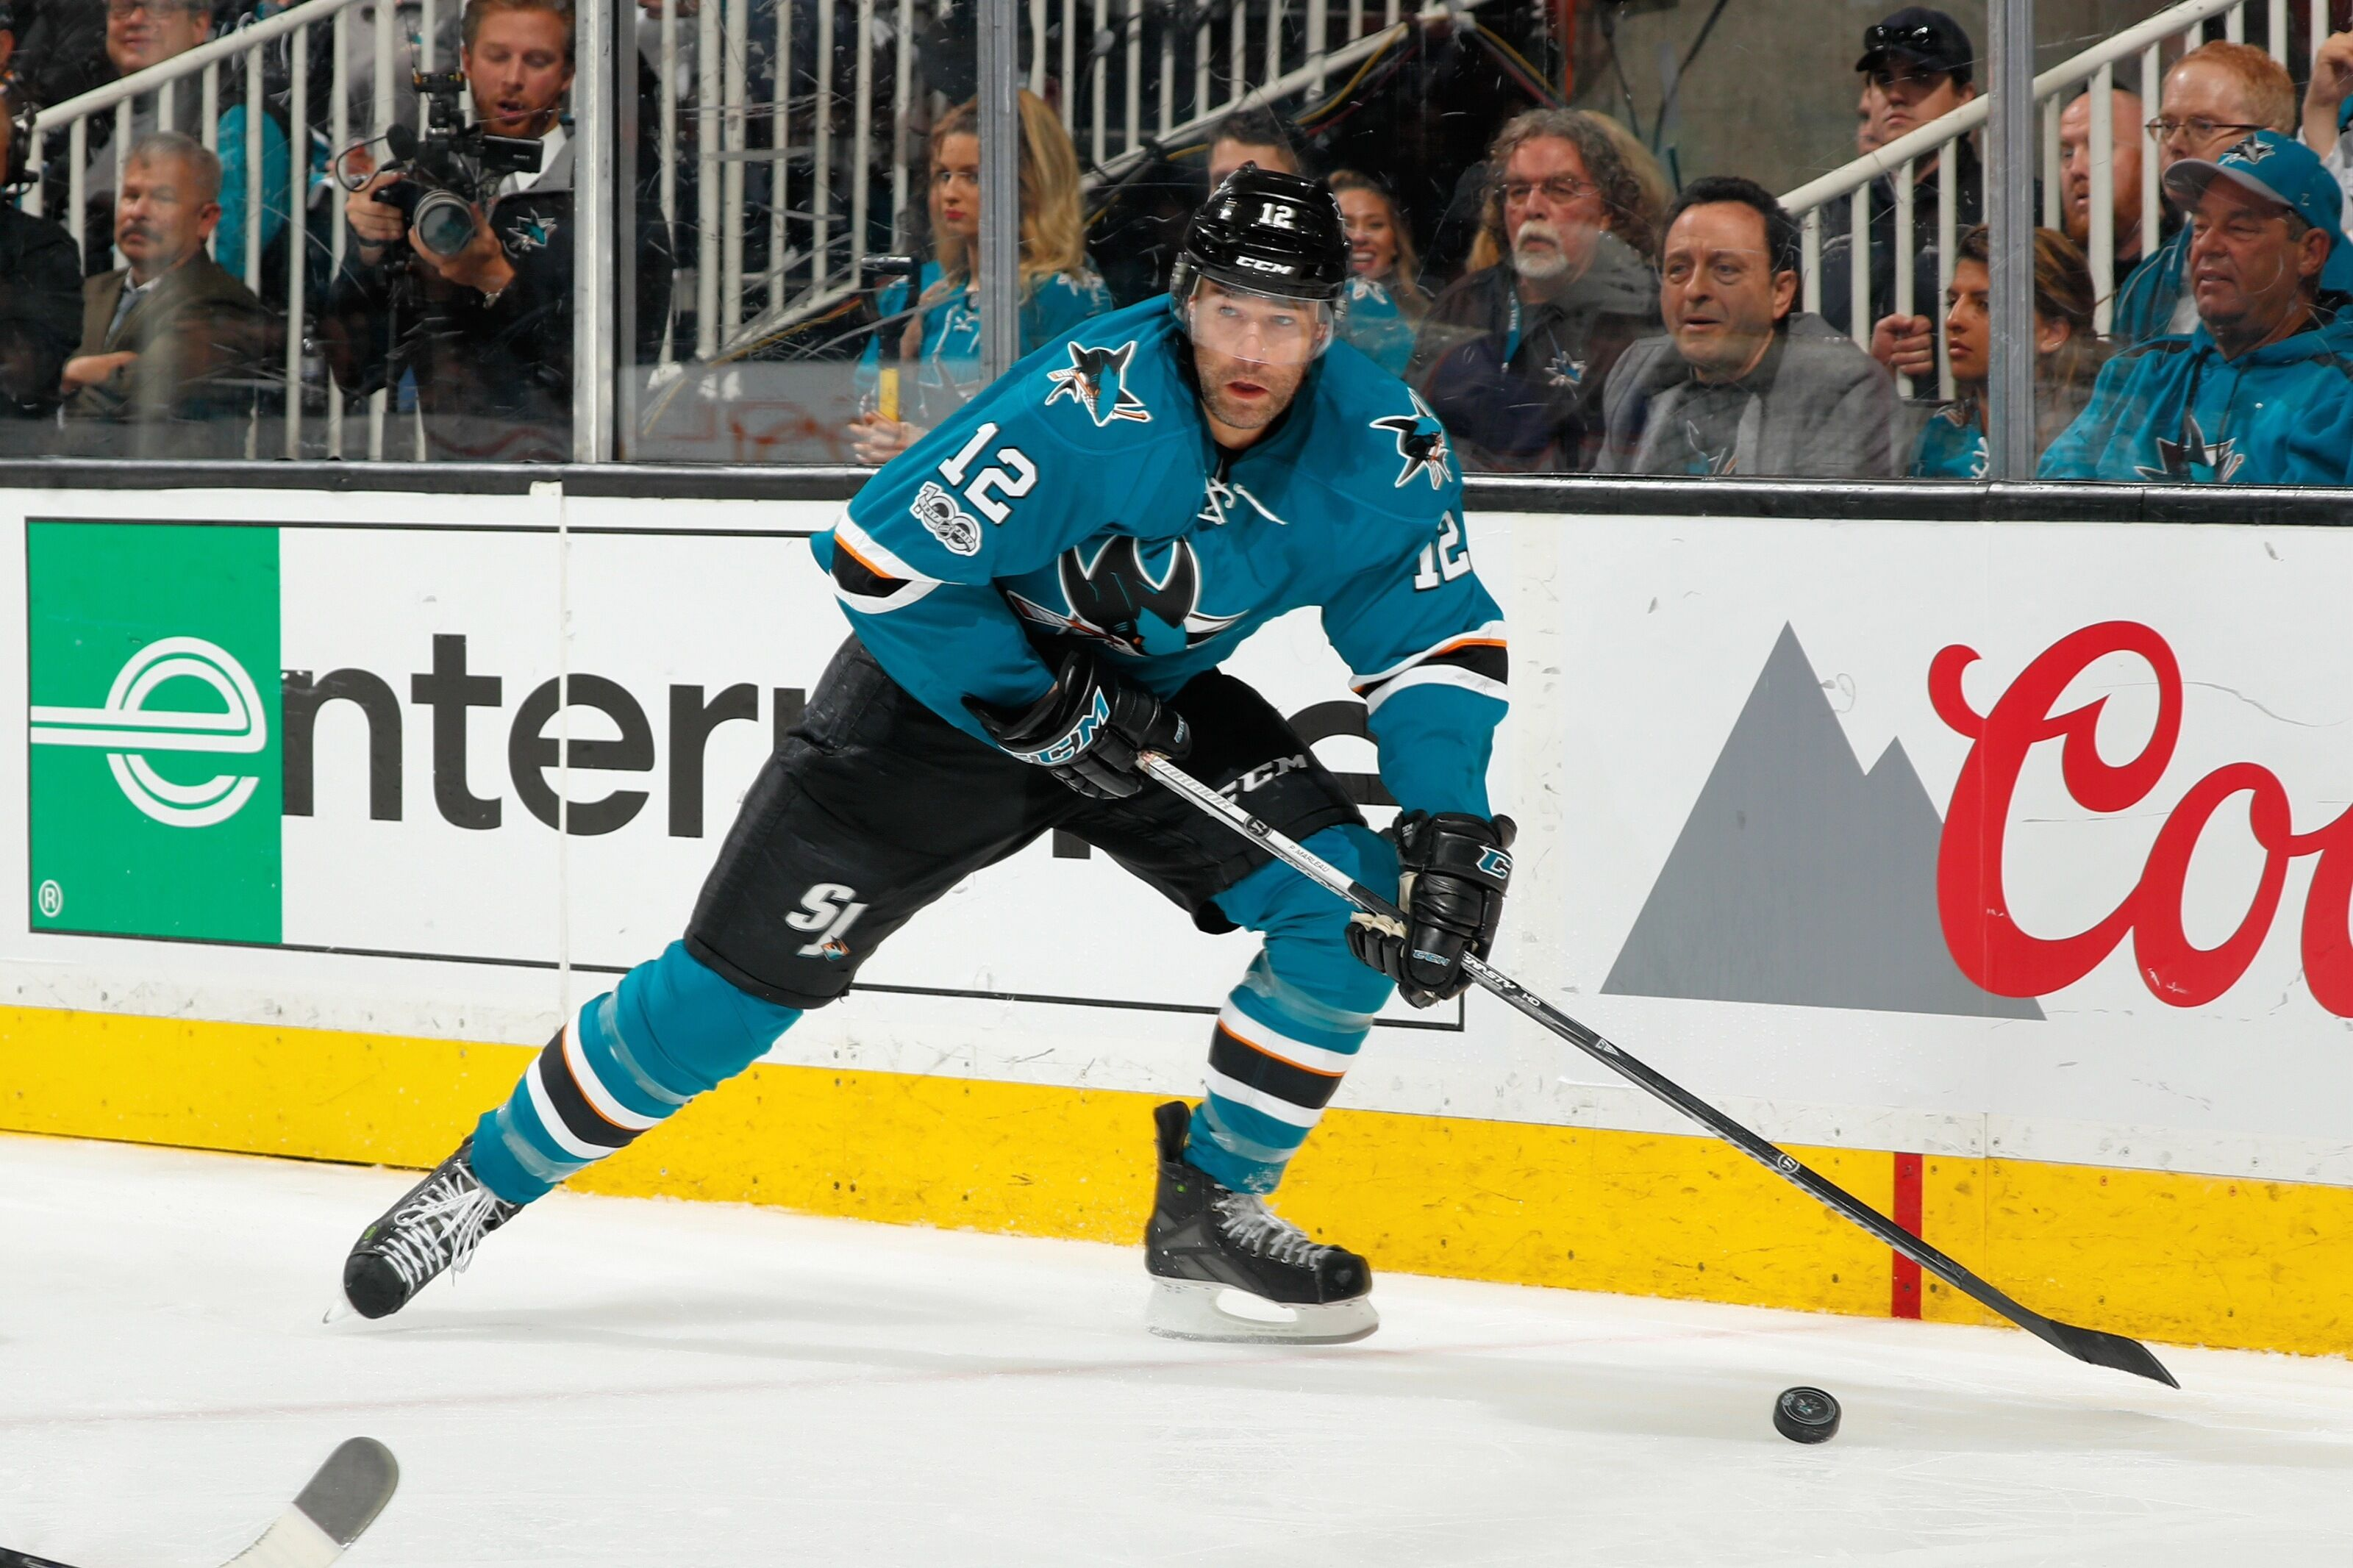 Patrick Marleau's Return to the San Jose Sharks in Question